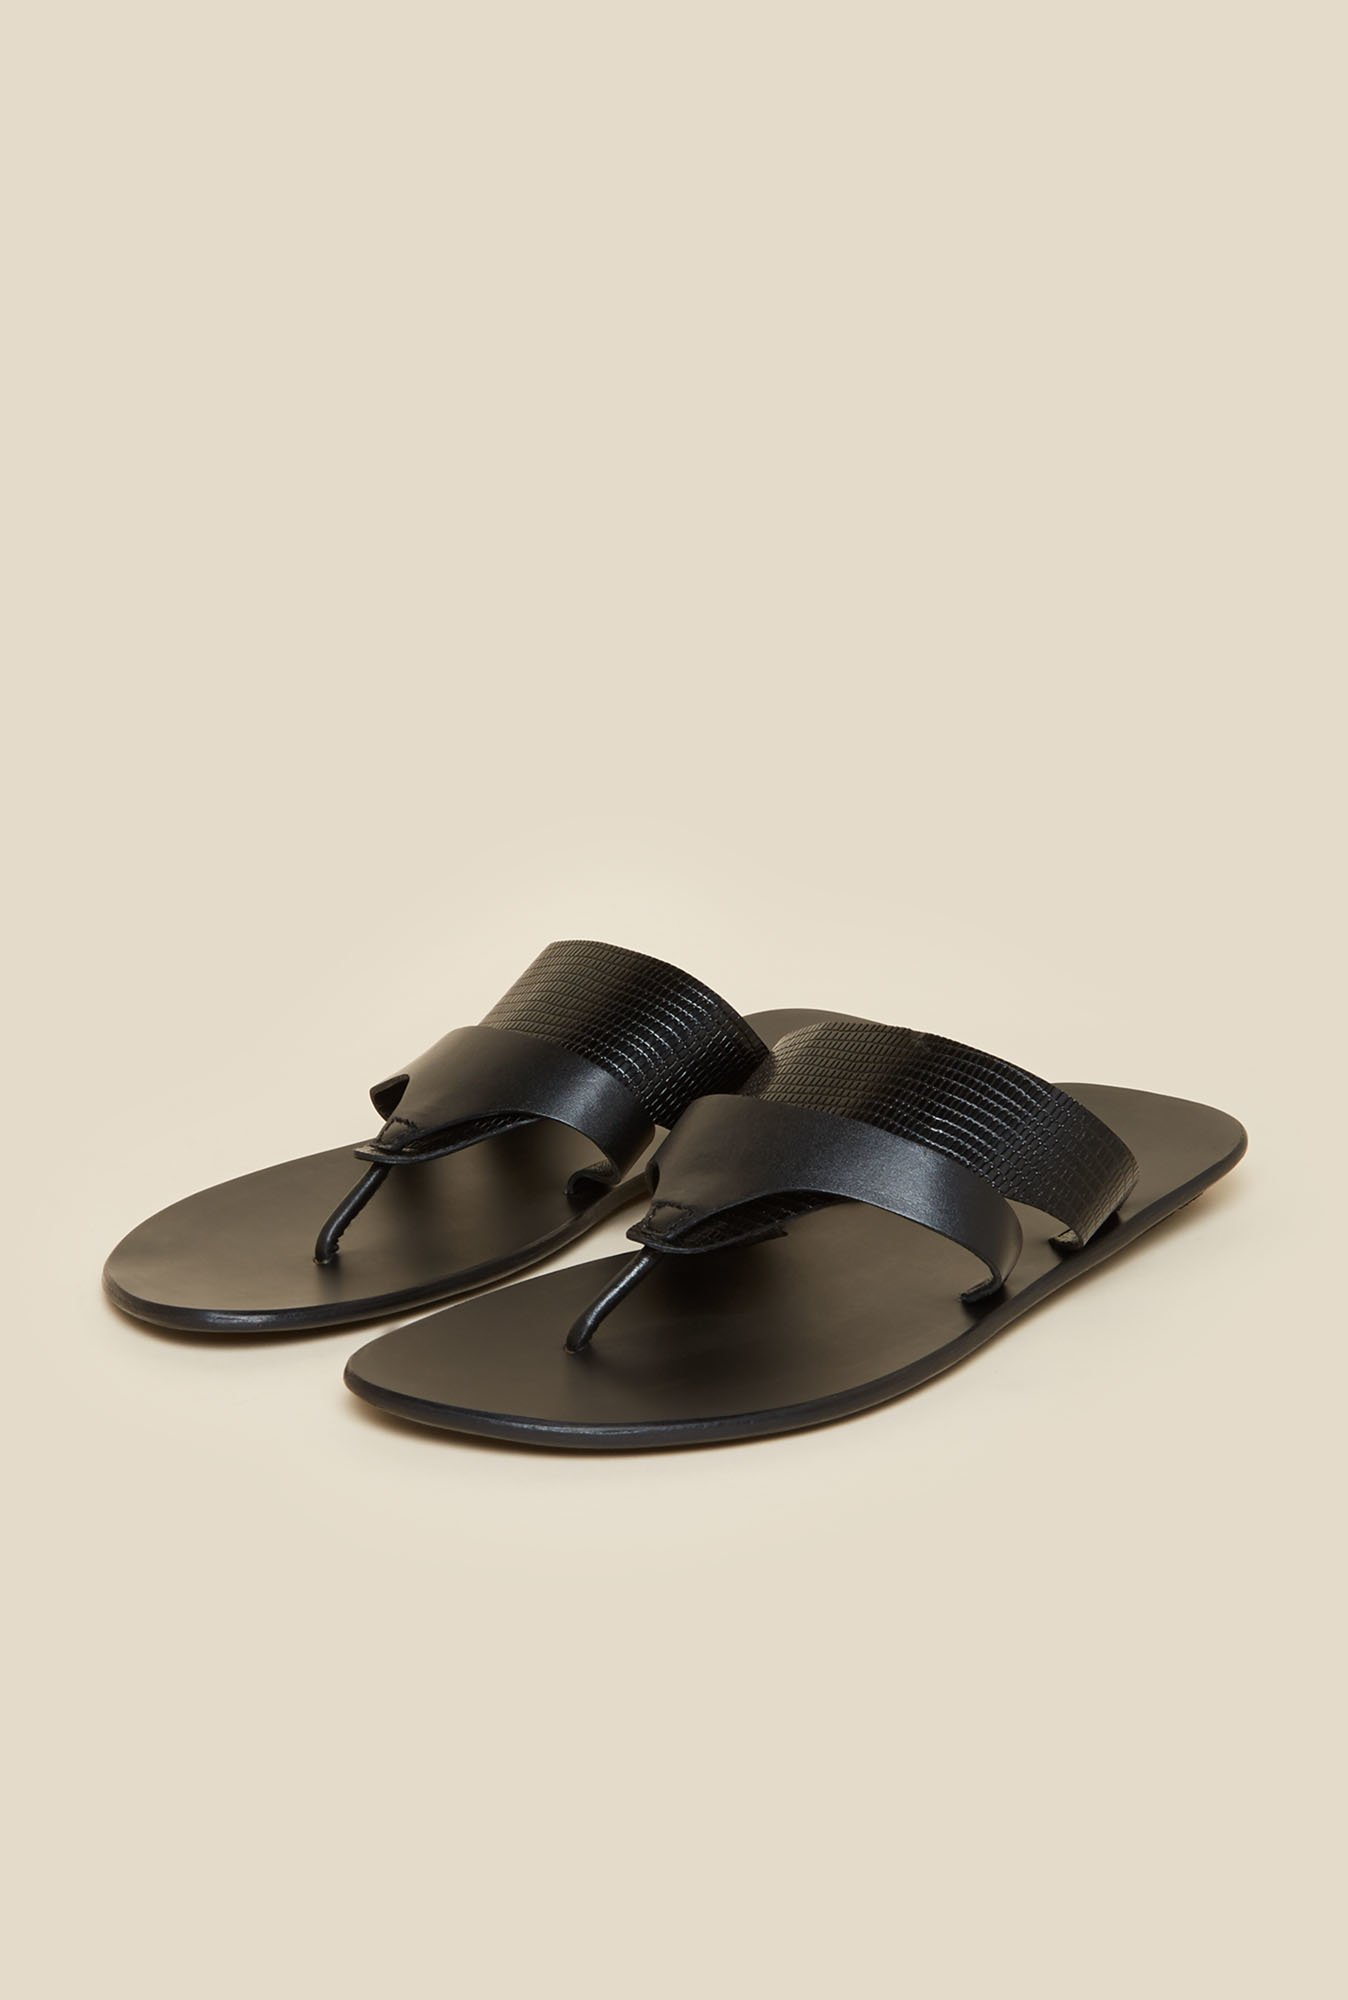 Metro Black Full Grain Leather Sandals